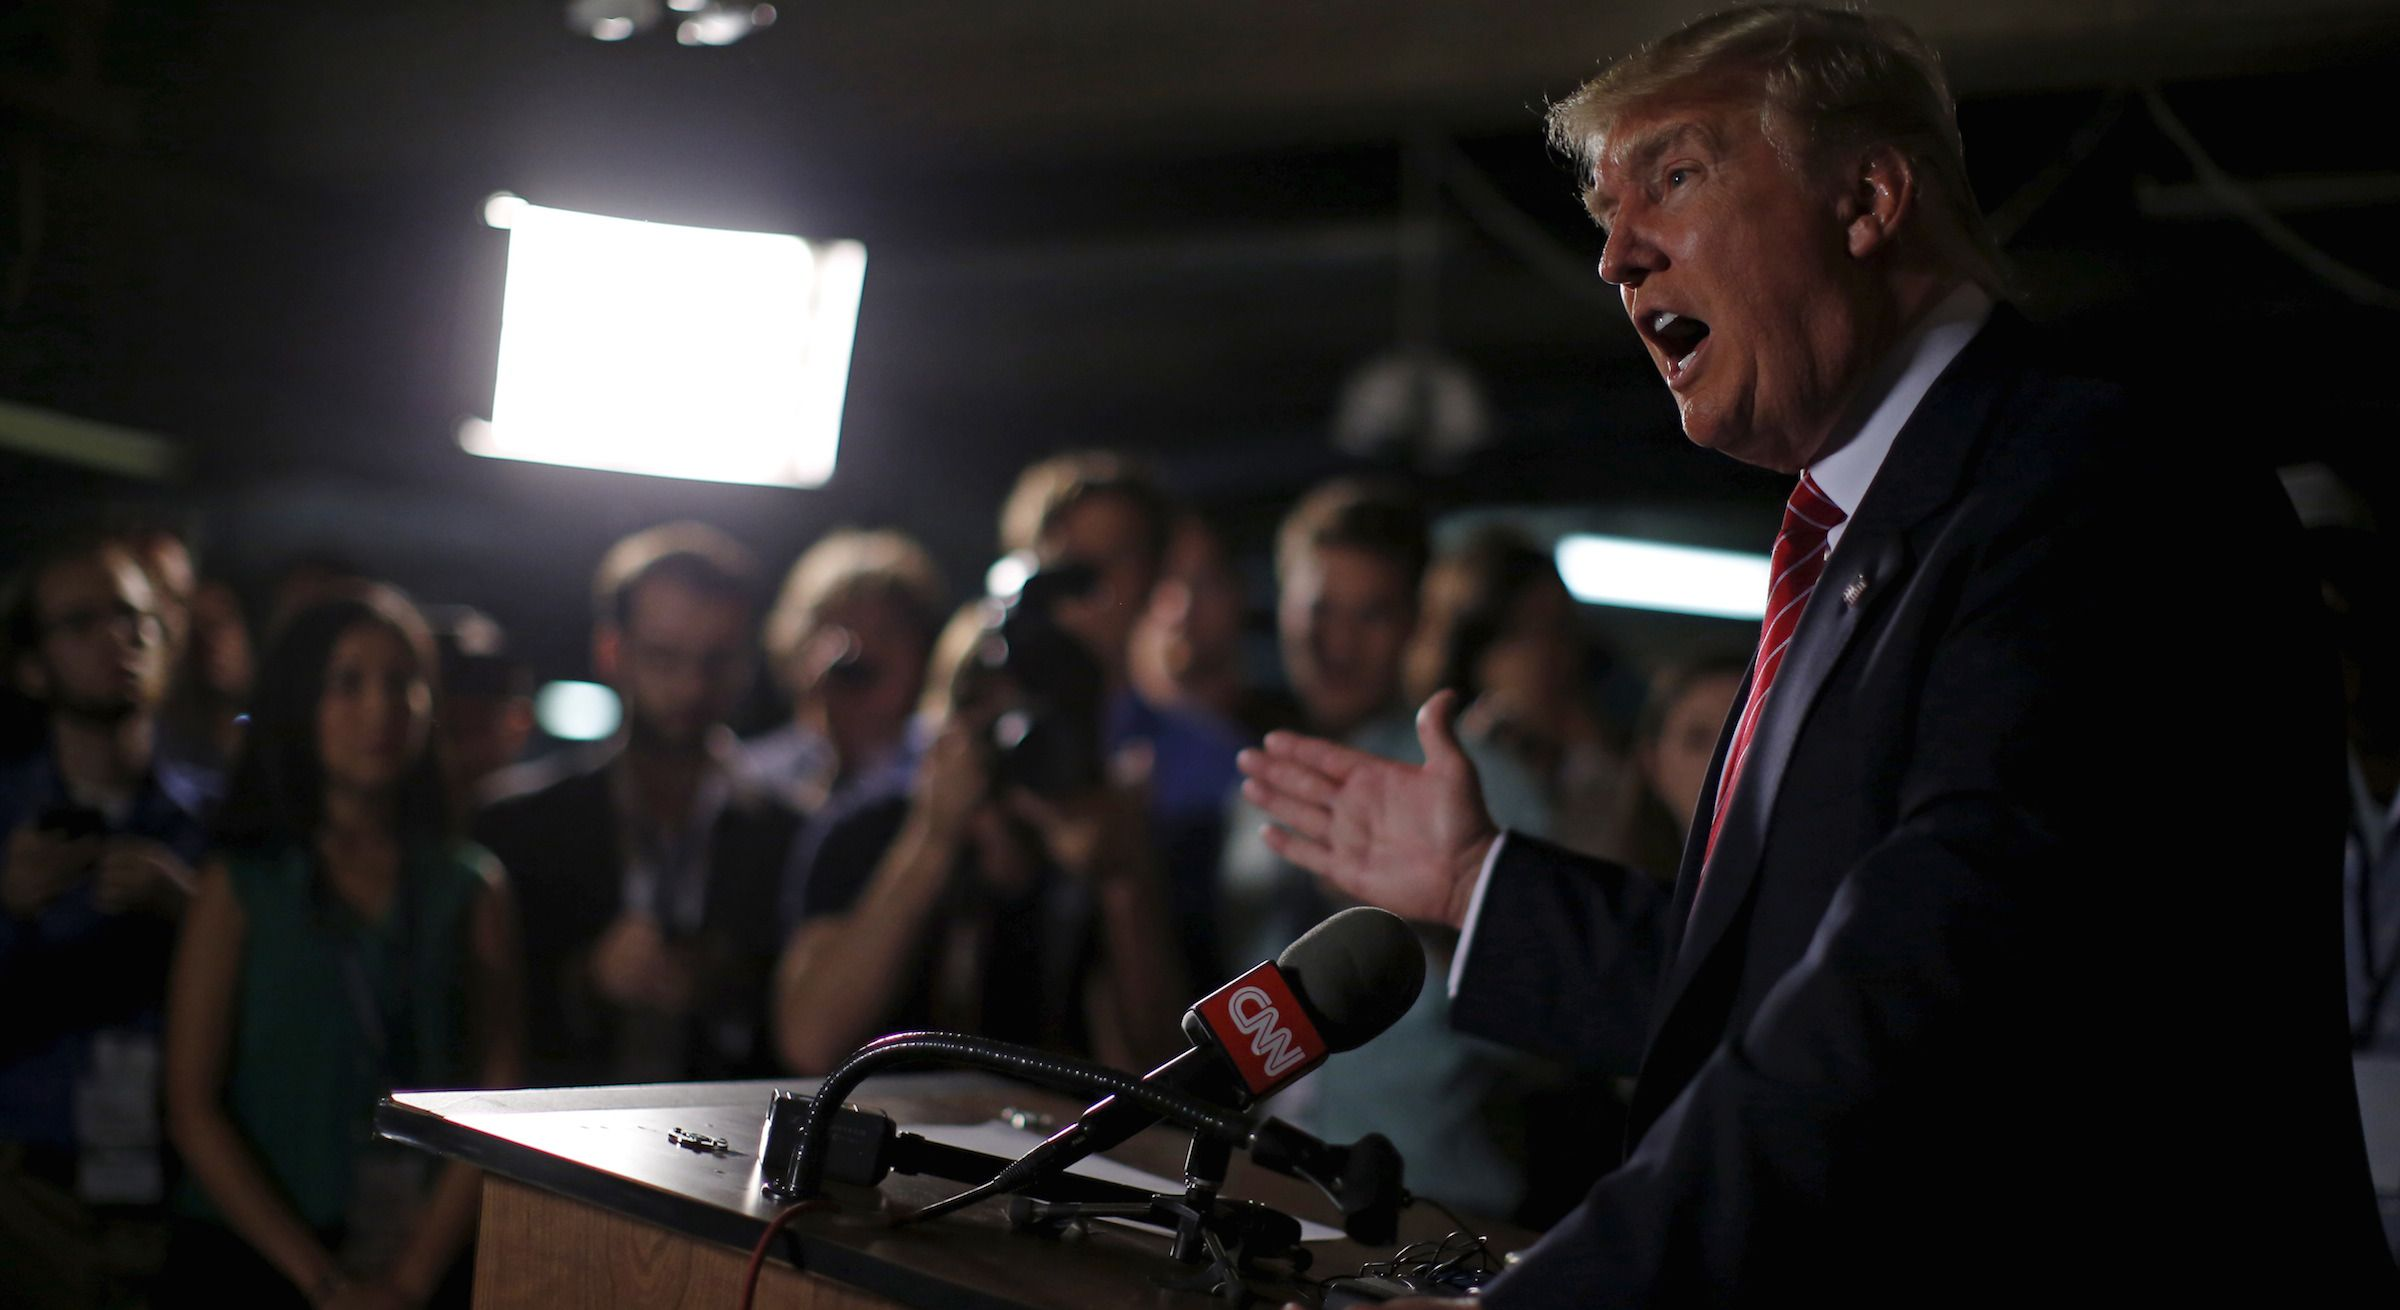 U.S. Republican presidential candidate Donald Trump speaks at a news conference at the Family Leadership Summit in Ames, Iowa, United States, July 18, 2015.